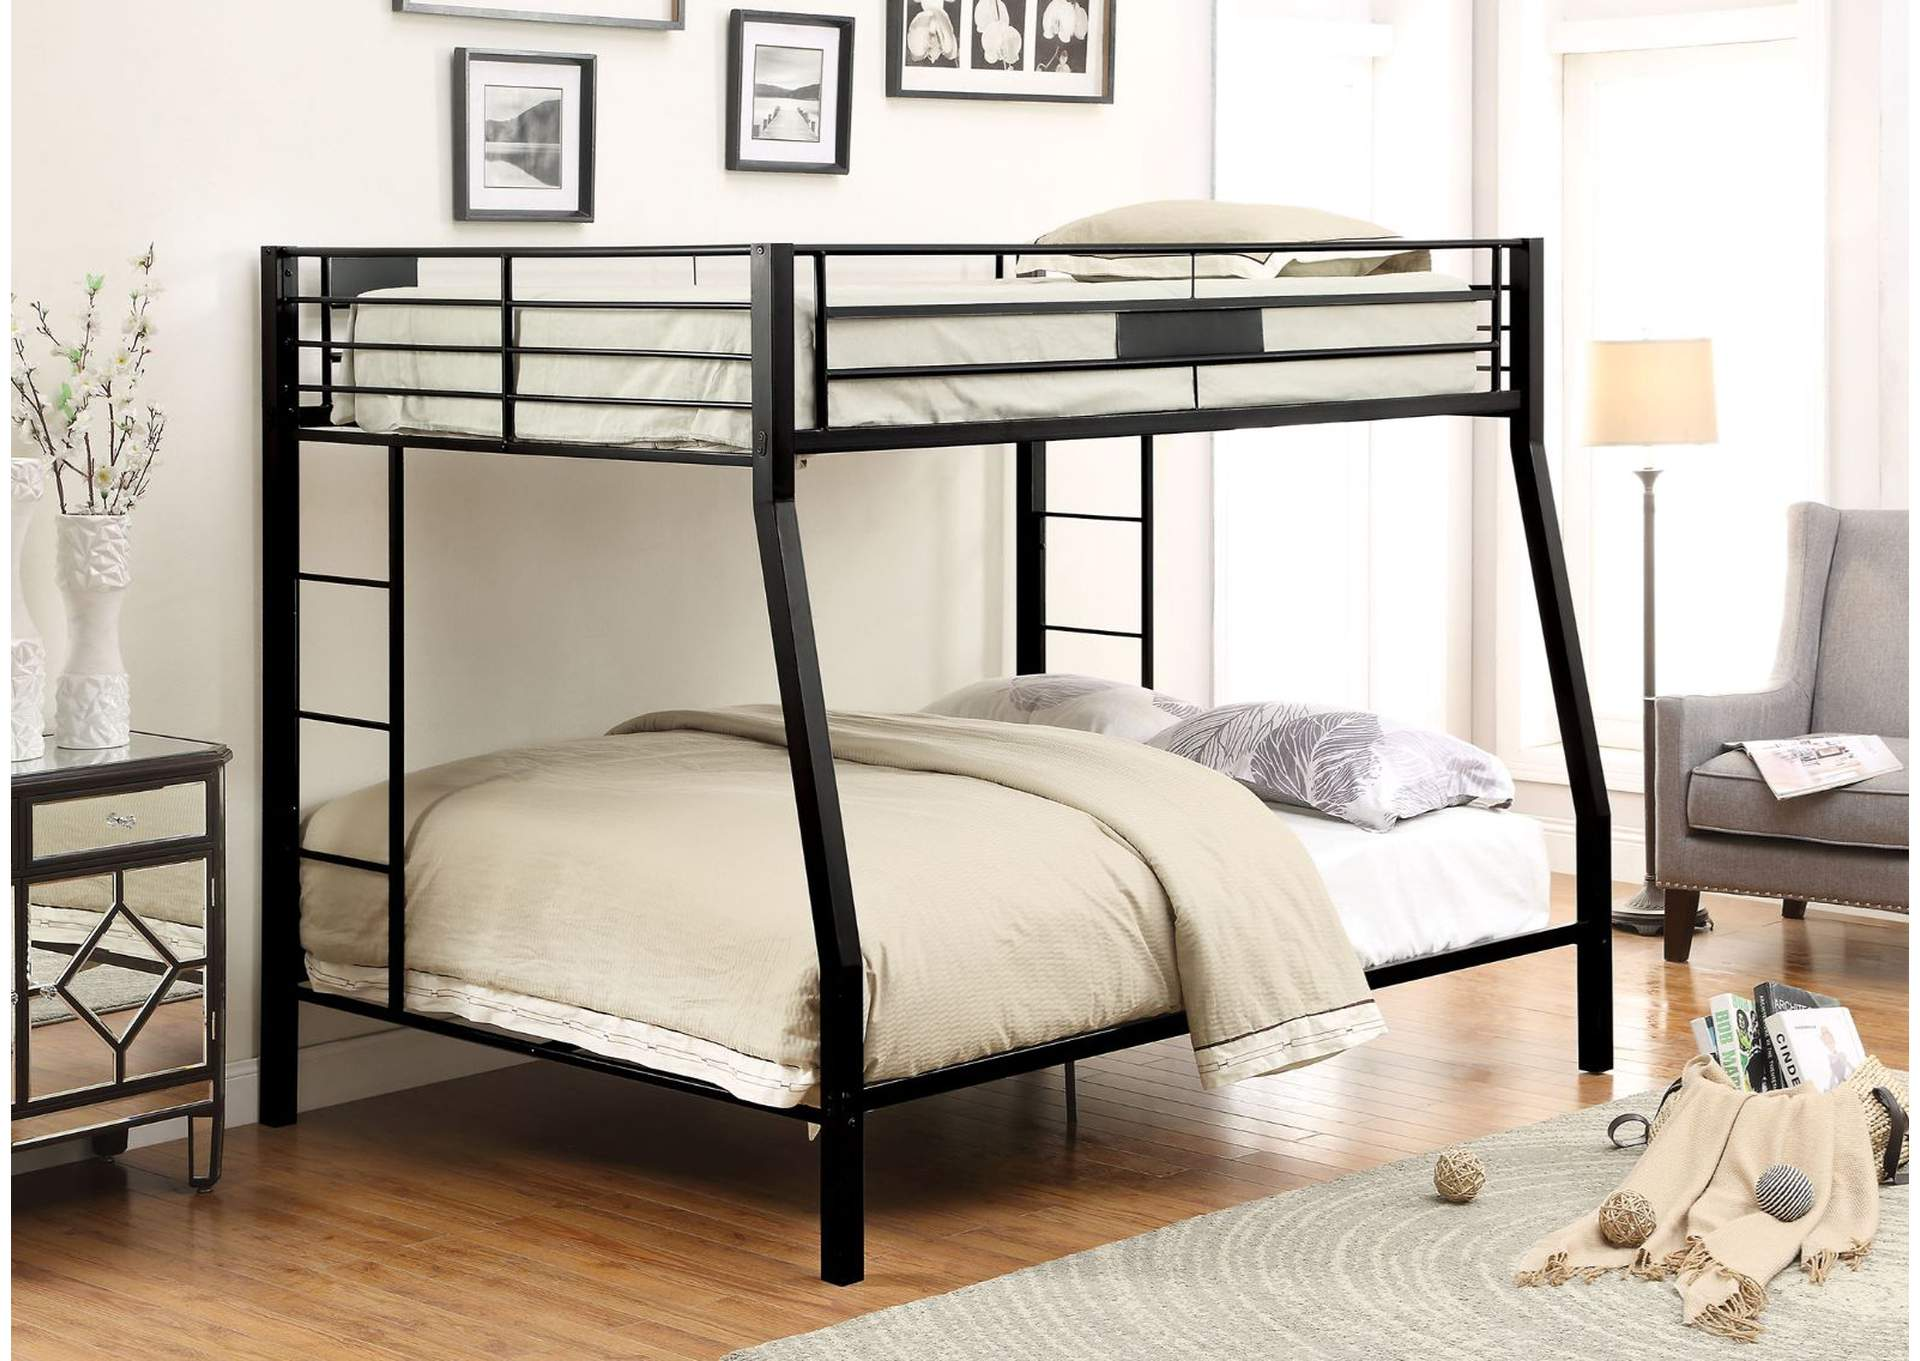 Limbra Sandy Black Bunk Bed,Acme